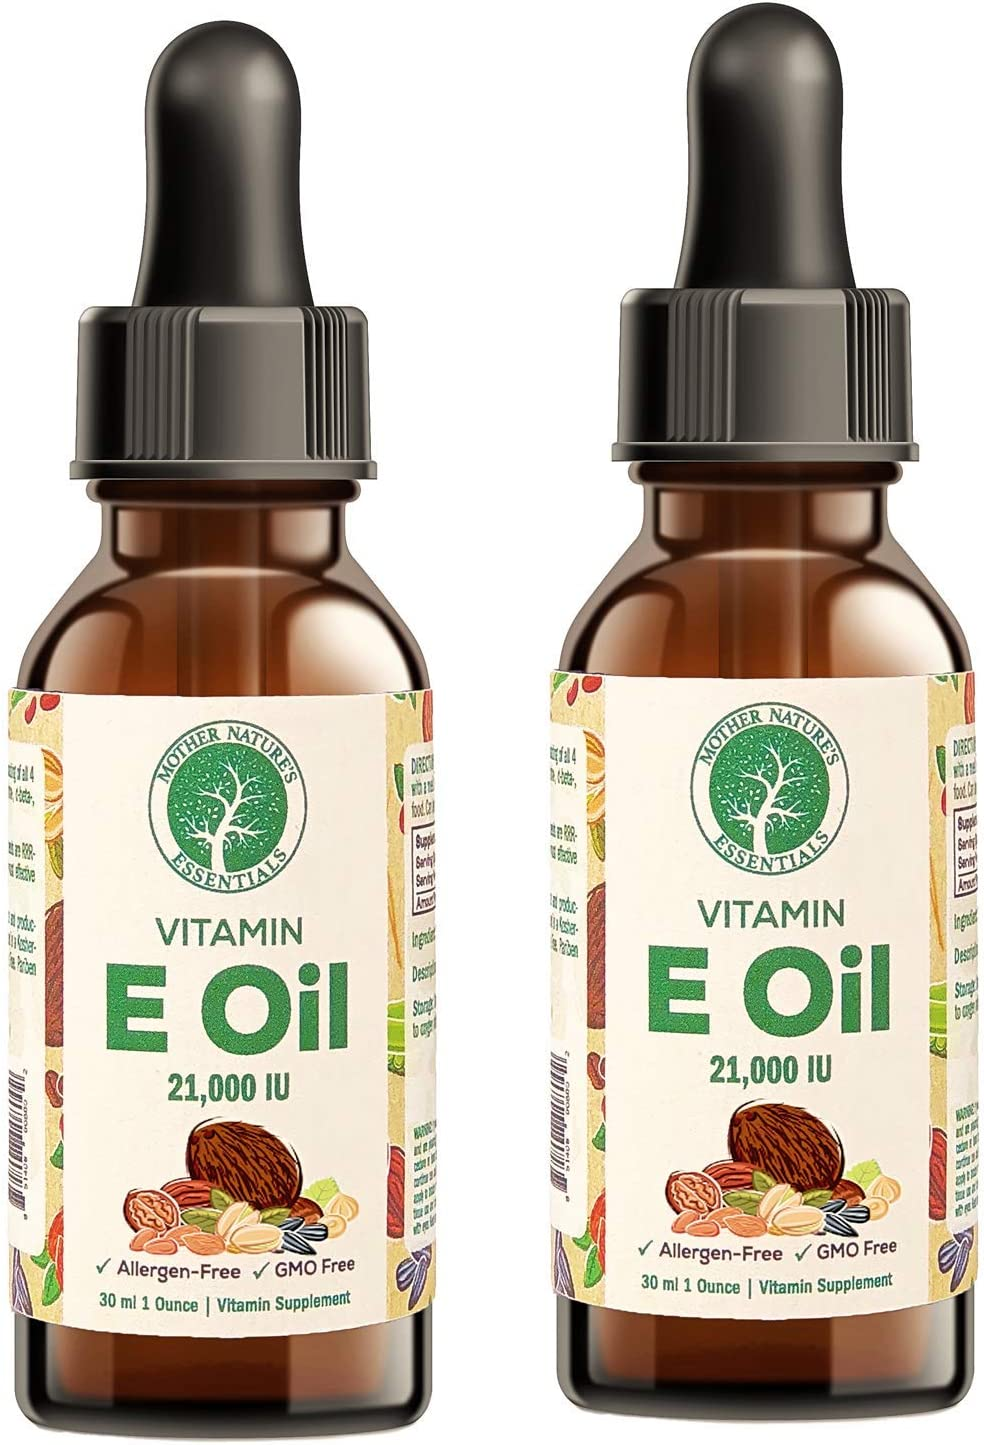 Vitamin E Oil by Mother Nature's Essentials, Supports The Bodies Natural Immune System, 21,00IU Vitamin E, Uses Orally or Topical, 1 oz. 2 Pack.